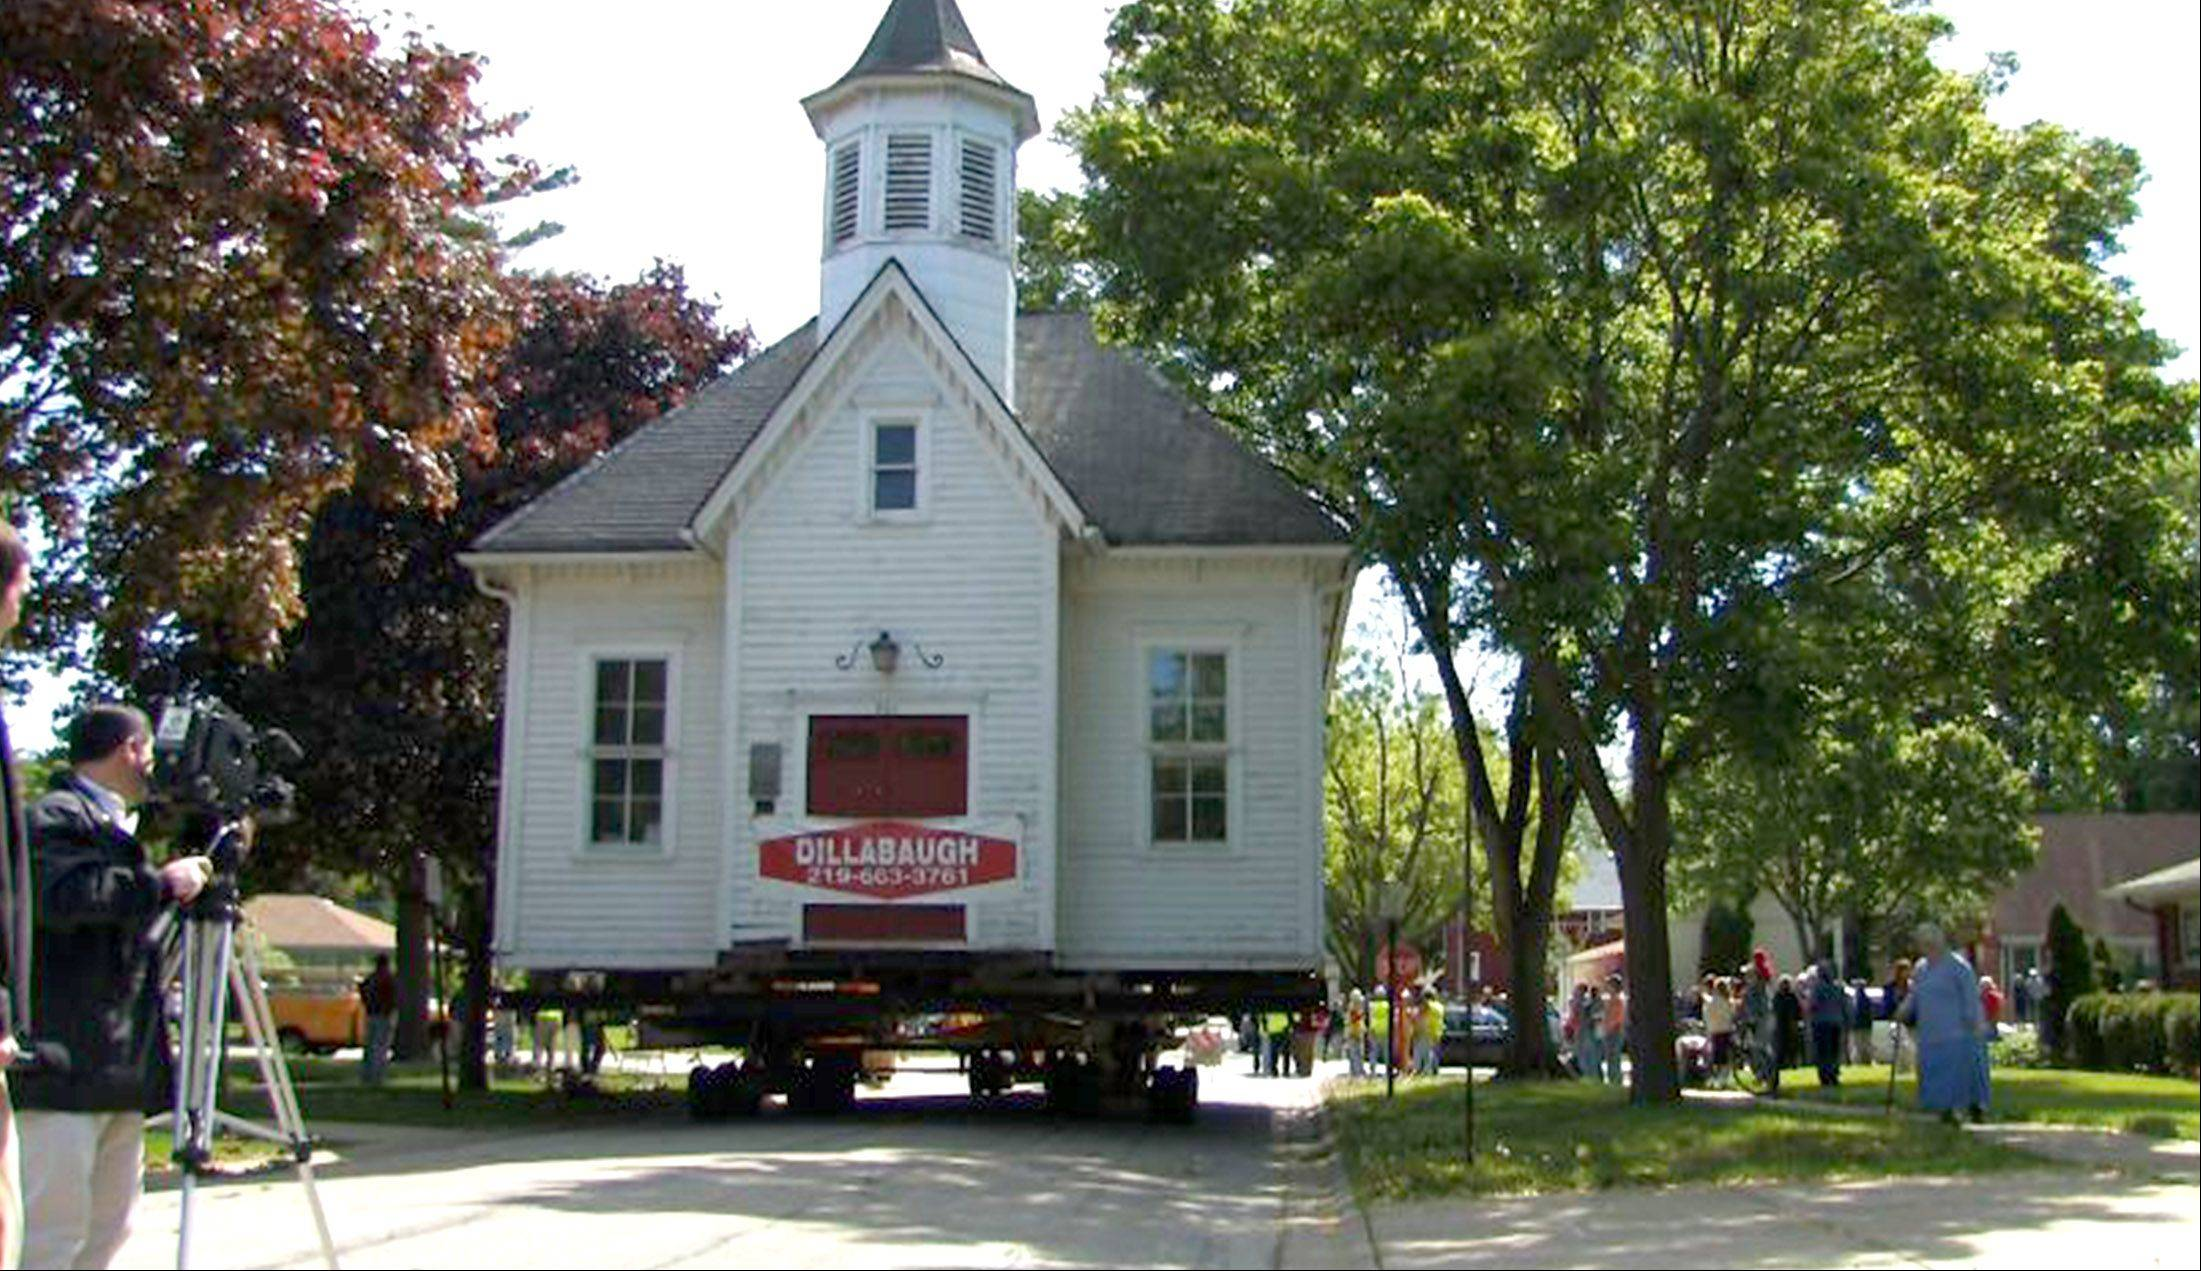 Central School was moved down Main Street from St. John's Episcopal Church to its new home next to the Mount Prospect Historical Society on May 28, 2008. Trees were trimmed and utilities temporarily shut down to accommodate the move.